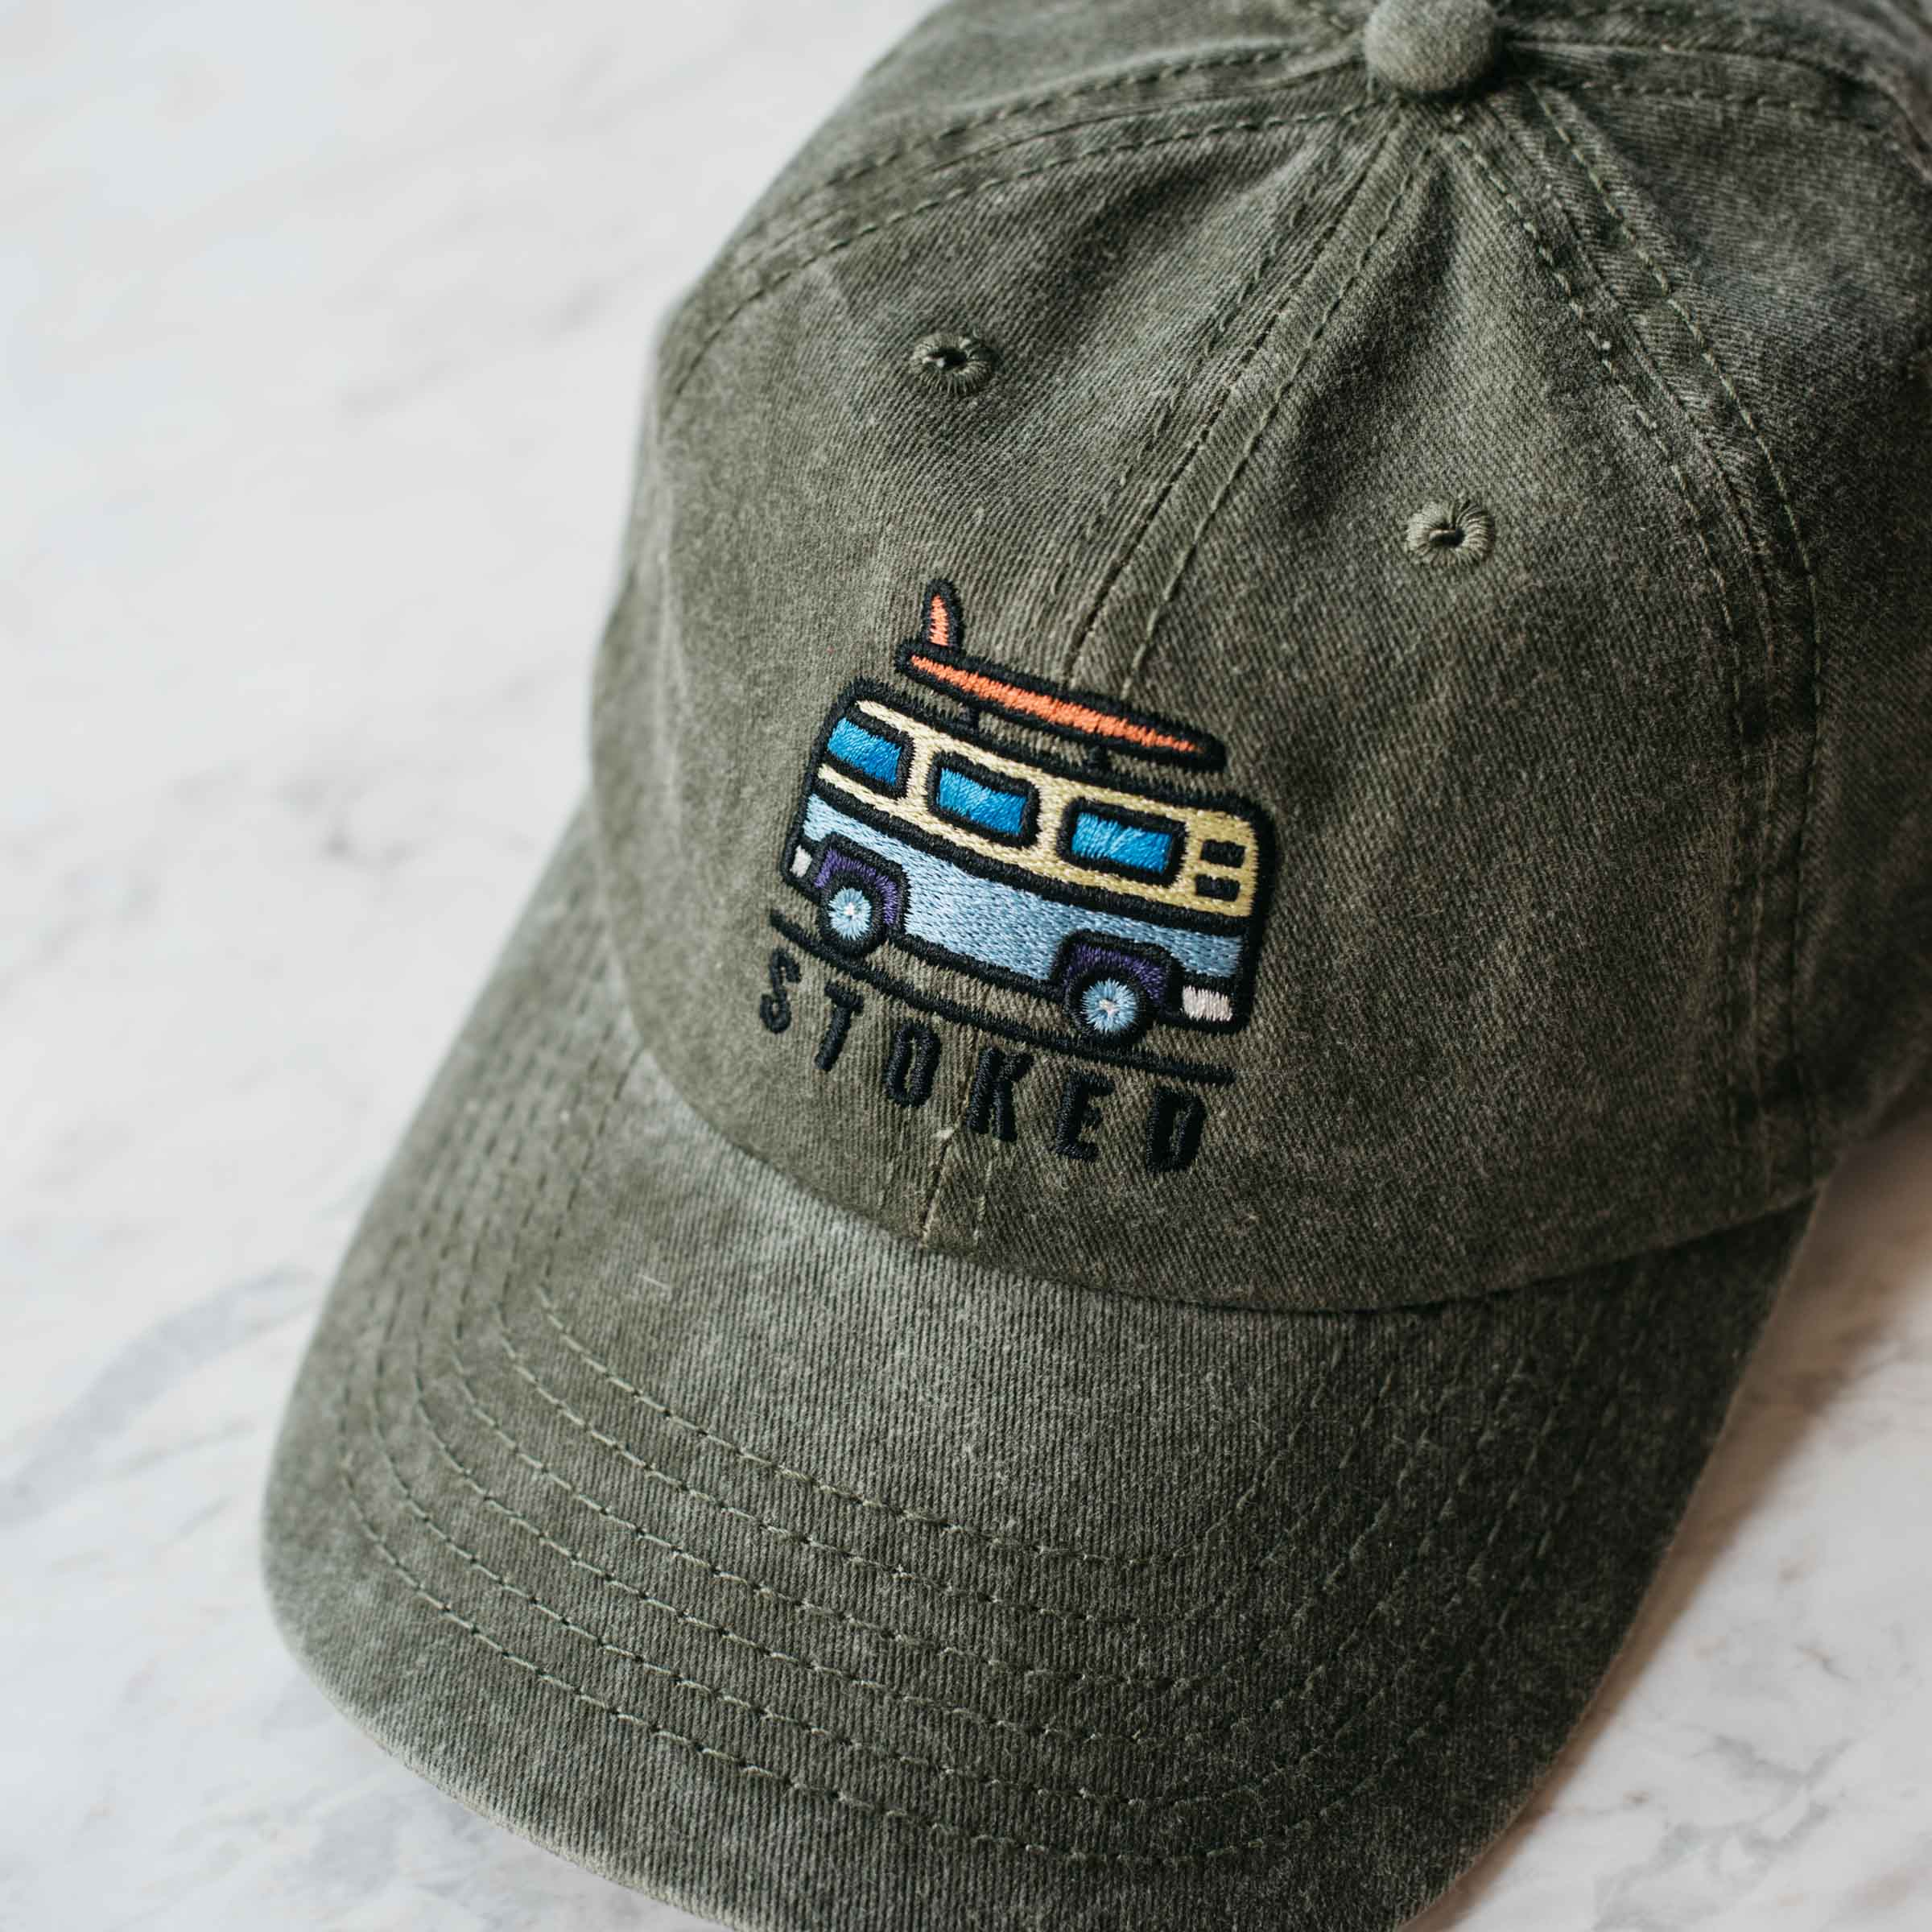 The Olive Kombi Cap - Stokedthebrand. Lifestyle products for outdoor adventures. Made in South Africa